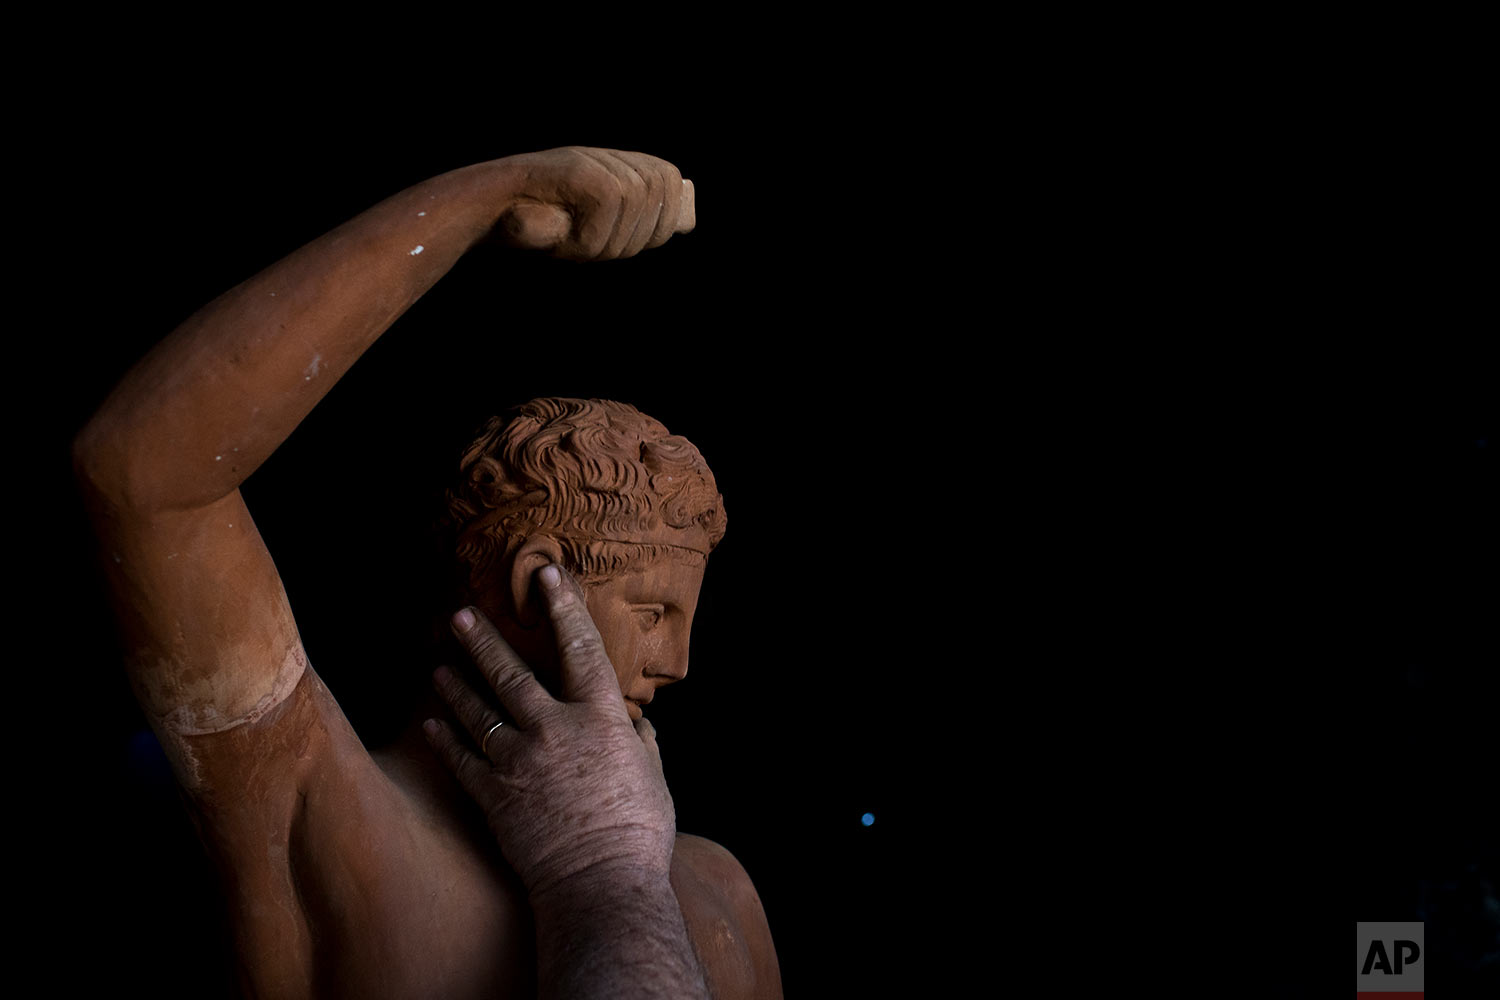 In this Tuesday, Dec. 19, 2017 photo, sculptor and ceramicist Haralambos Goumas touches a terracotta statue of Hermes, messenger of the ancient Greek gods, at his workshop in the Egaleo suburb of Athens. (AP Photo/Petros Giannakouris)